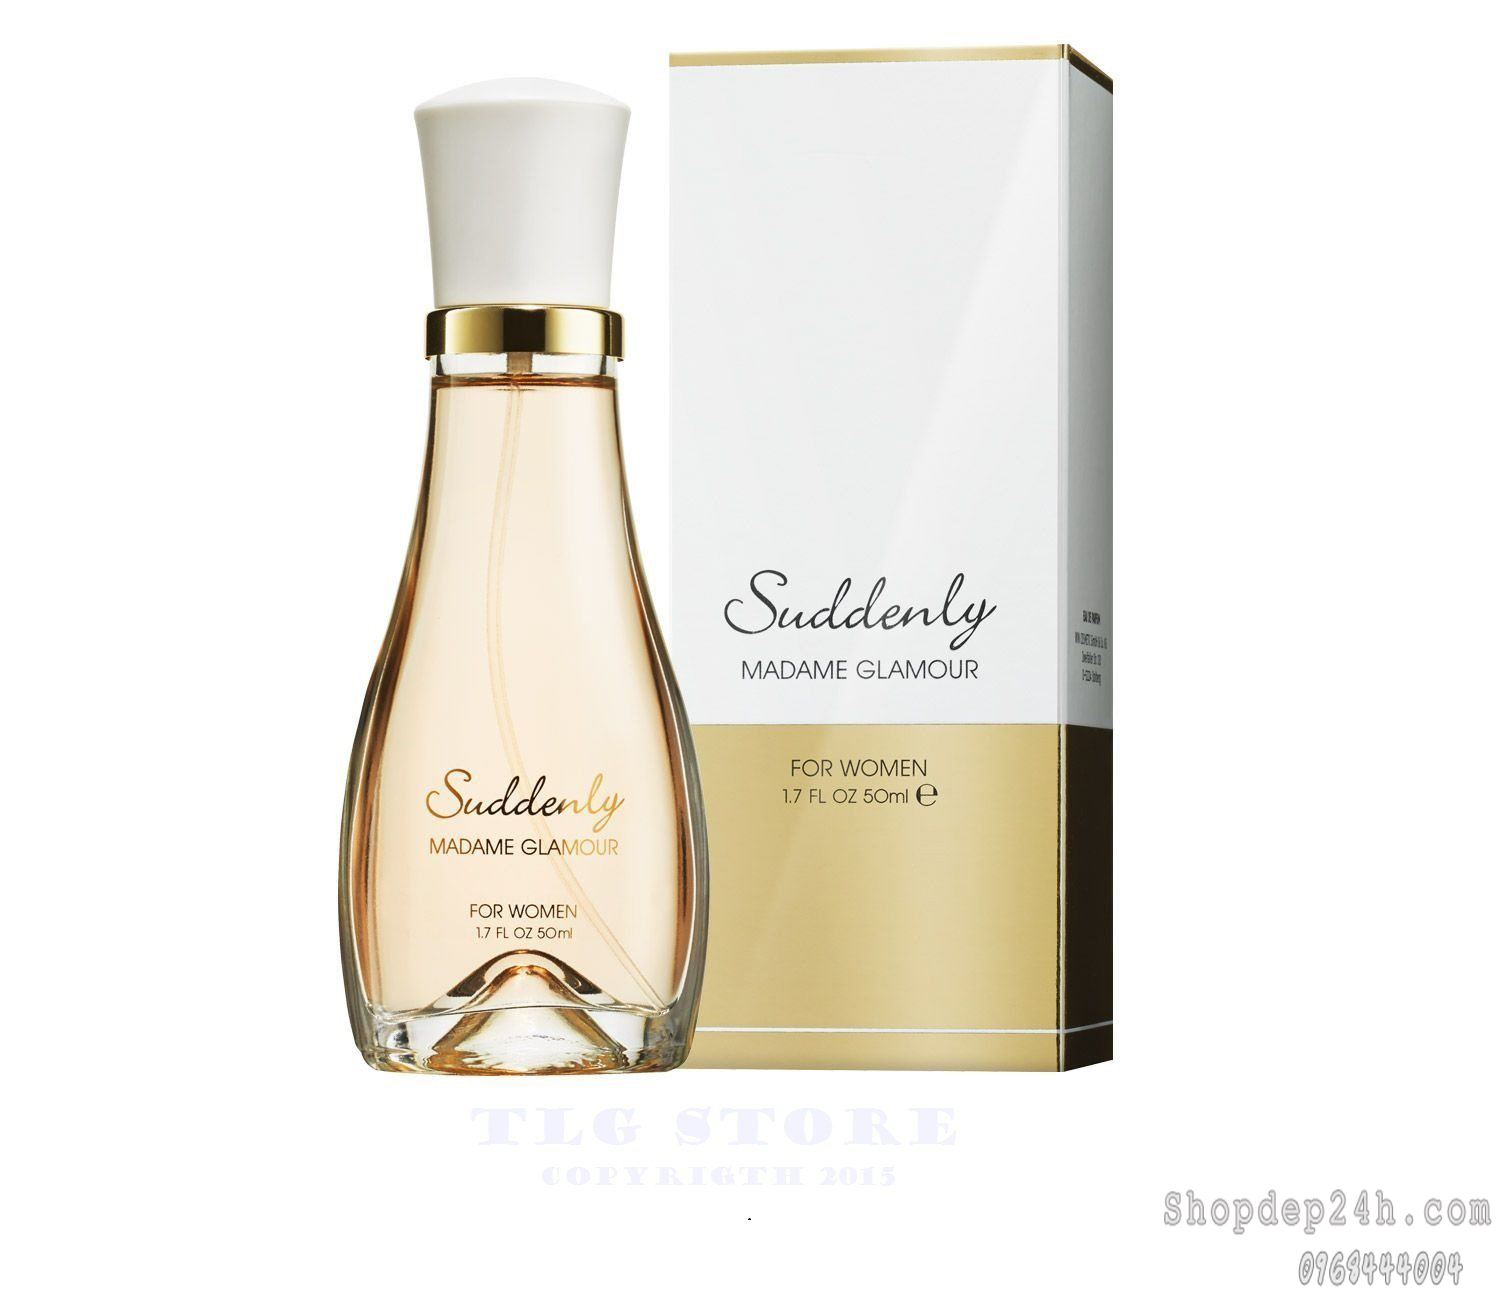 [Suddenly] Nước hoa nữ Suddenly Madame Glamour For Women 50ml